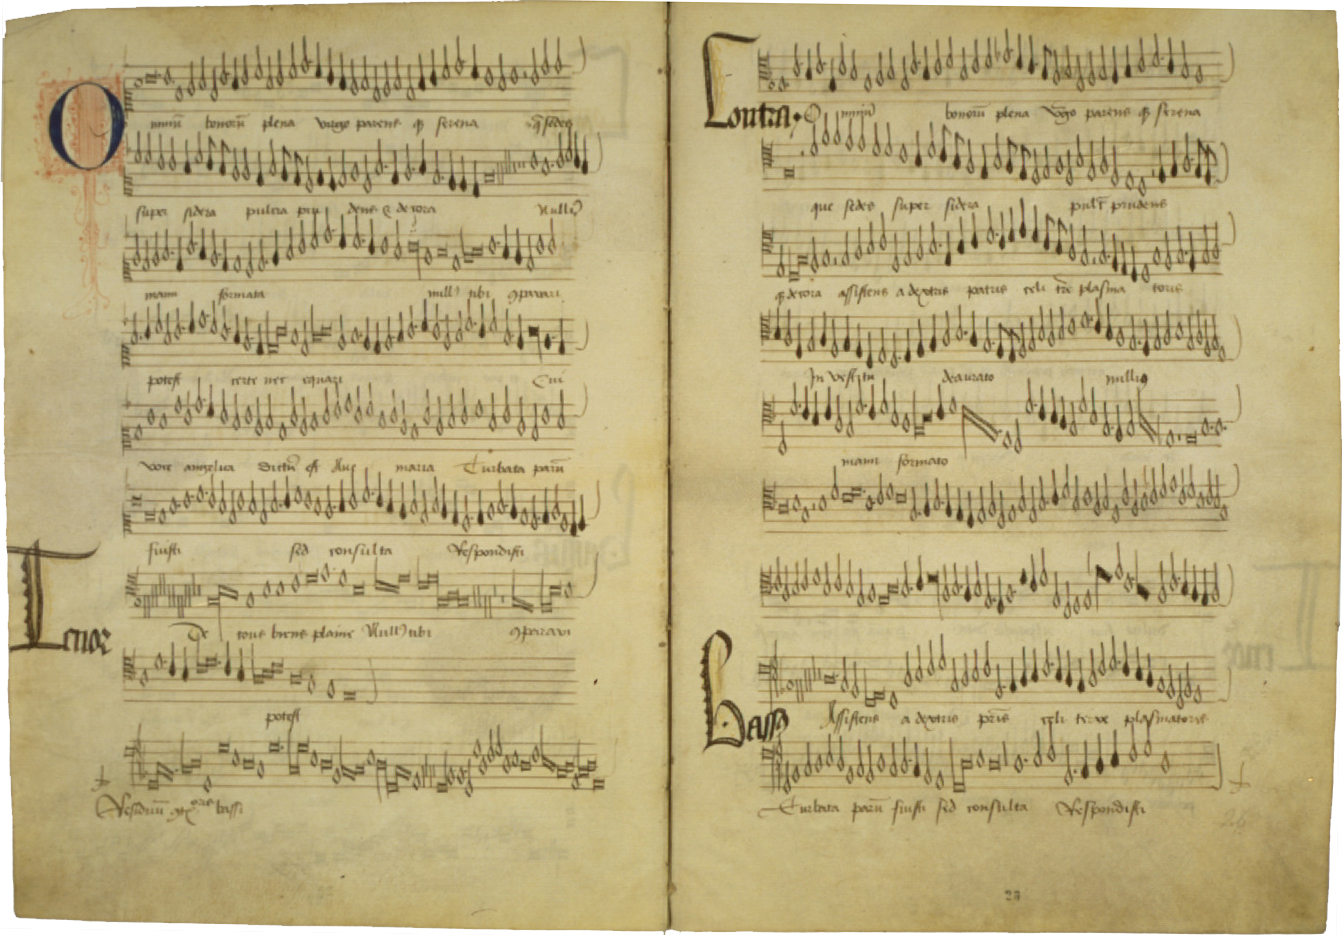 Manuscript of ''Omnium bonorum plena'', a motet by Compère, and possibly his earliest surviving work; the exact date is uncertain, but it was possibly written for the dedication of Cambrai Cathedral on 2 July 1472.